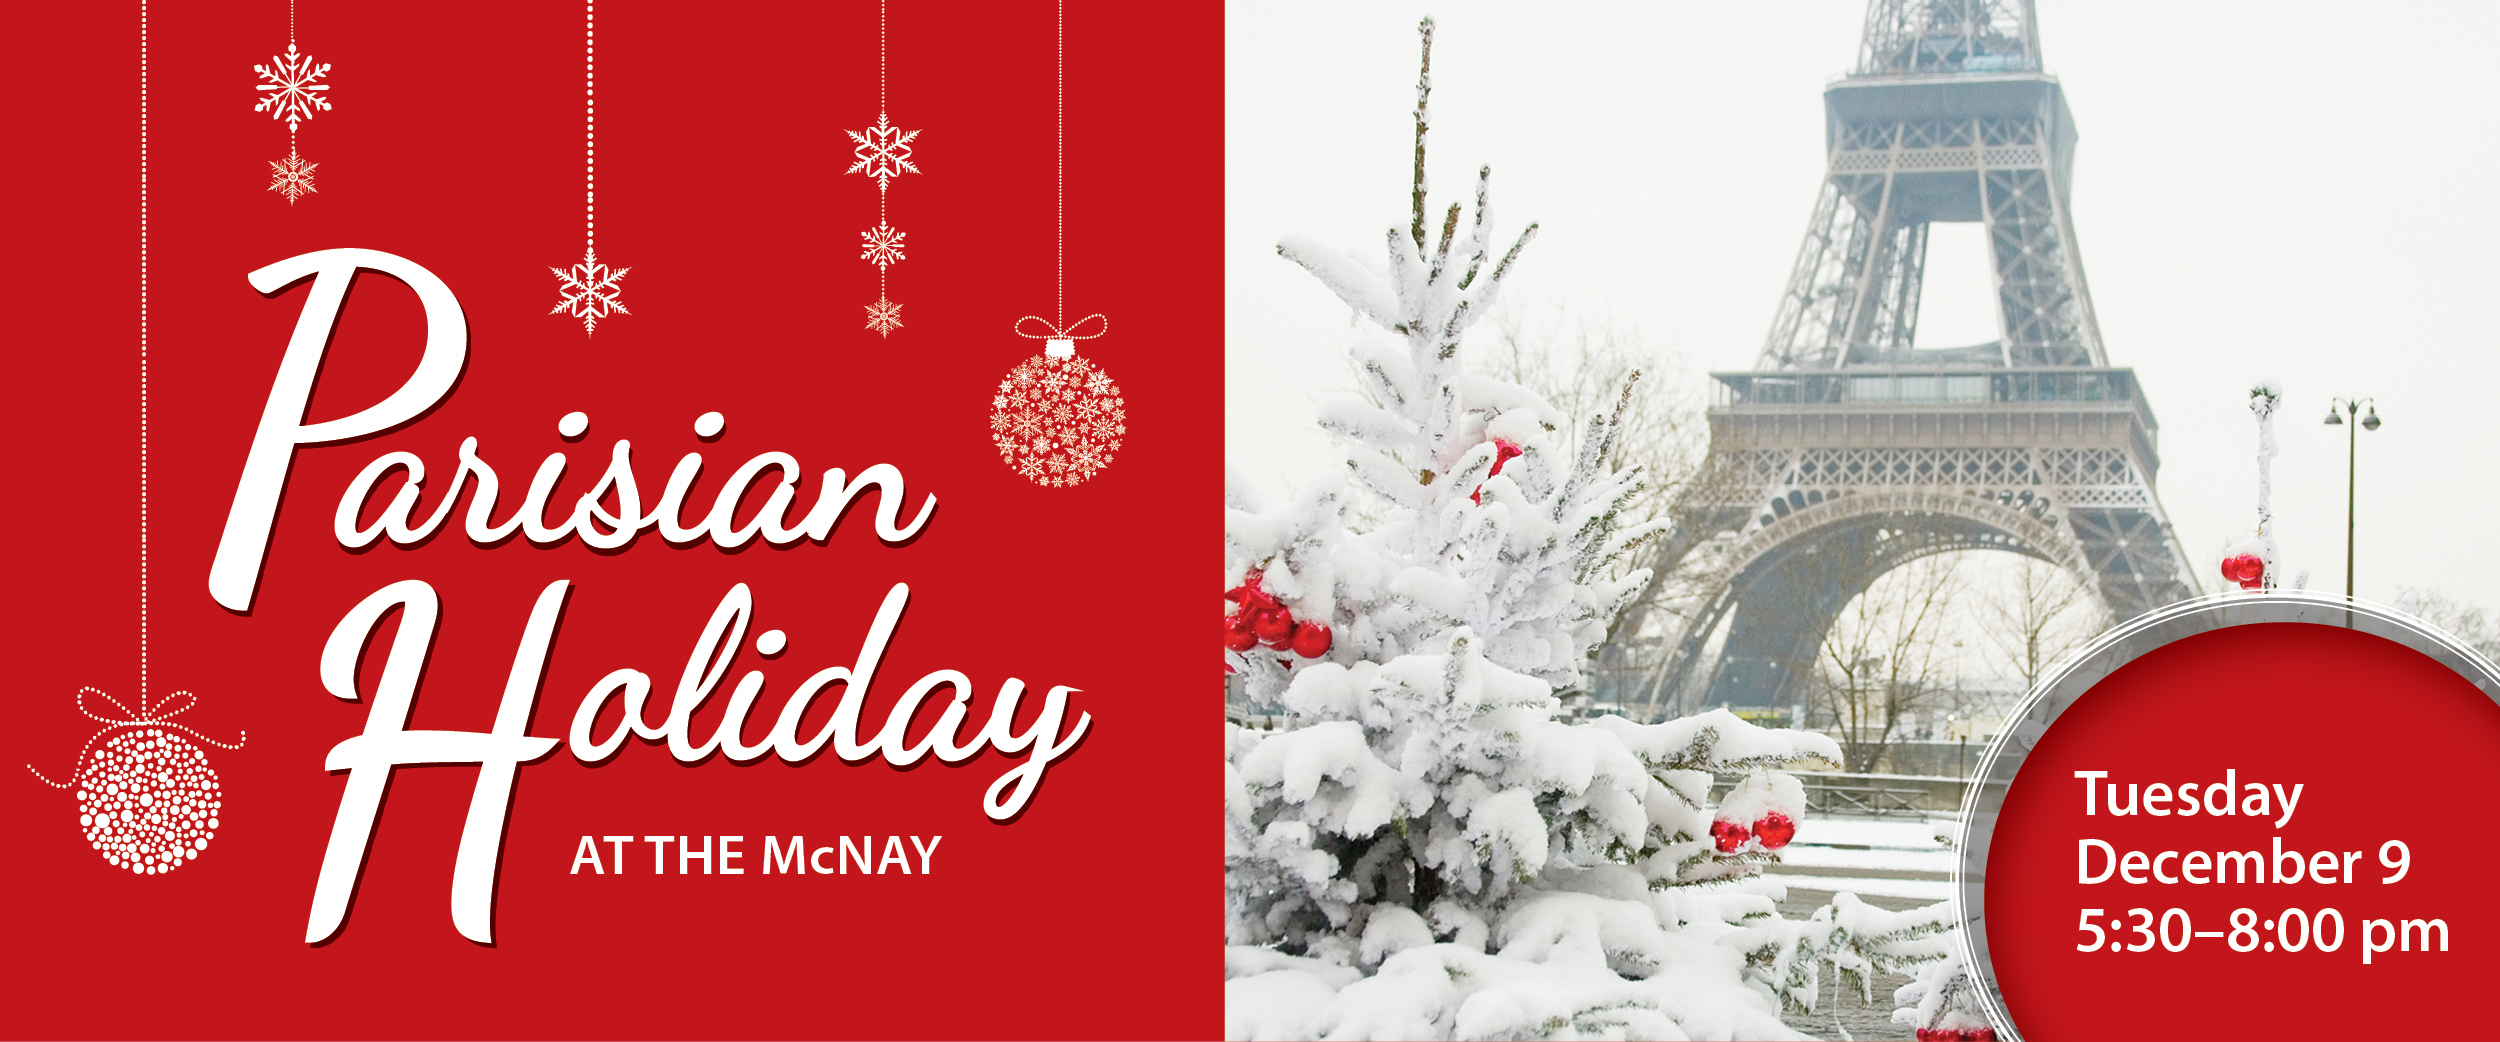 Parisian Holiday at the McNay